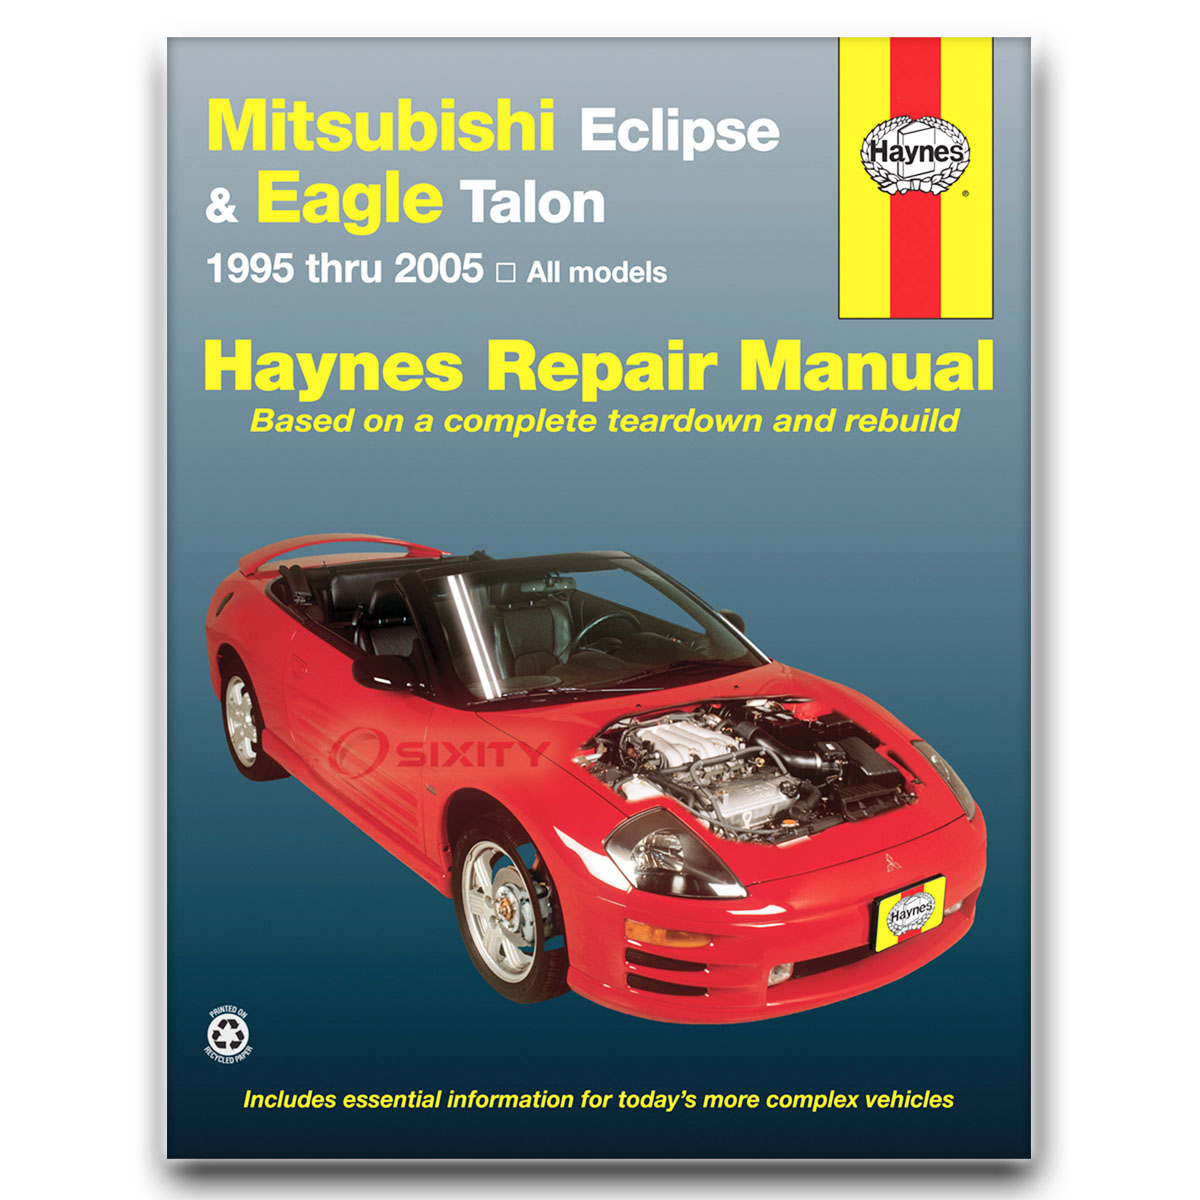 haynes repair manual for mitsubishi eclipse gst gt gsx rs spyder gts rh  ebay com 1994 Mitsubishi Eclipse Mitsubishi Eclipse GST